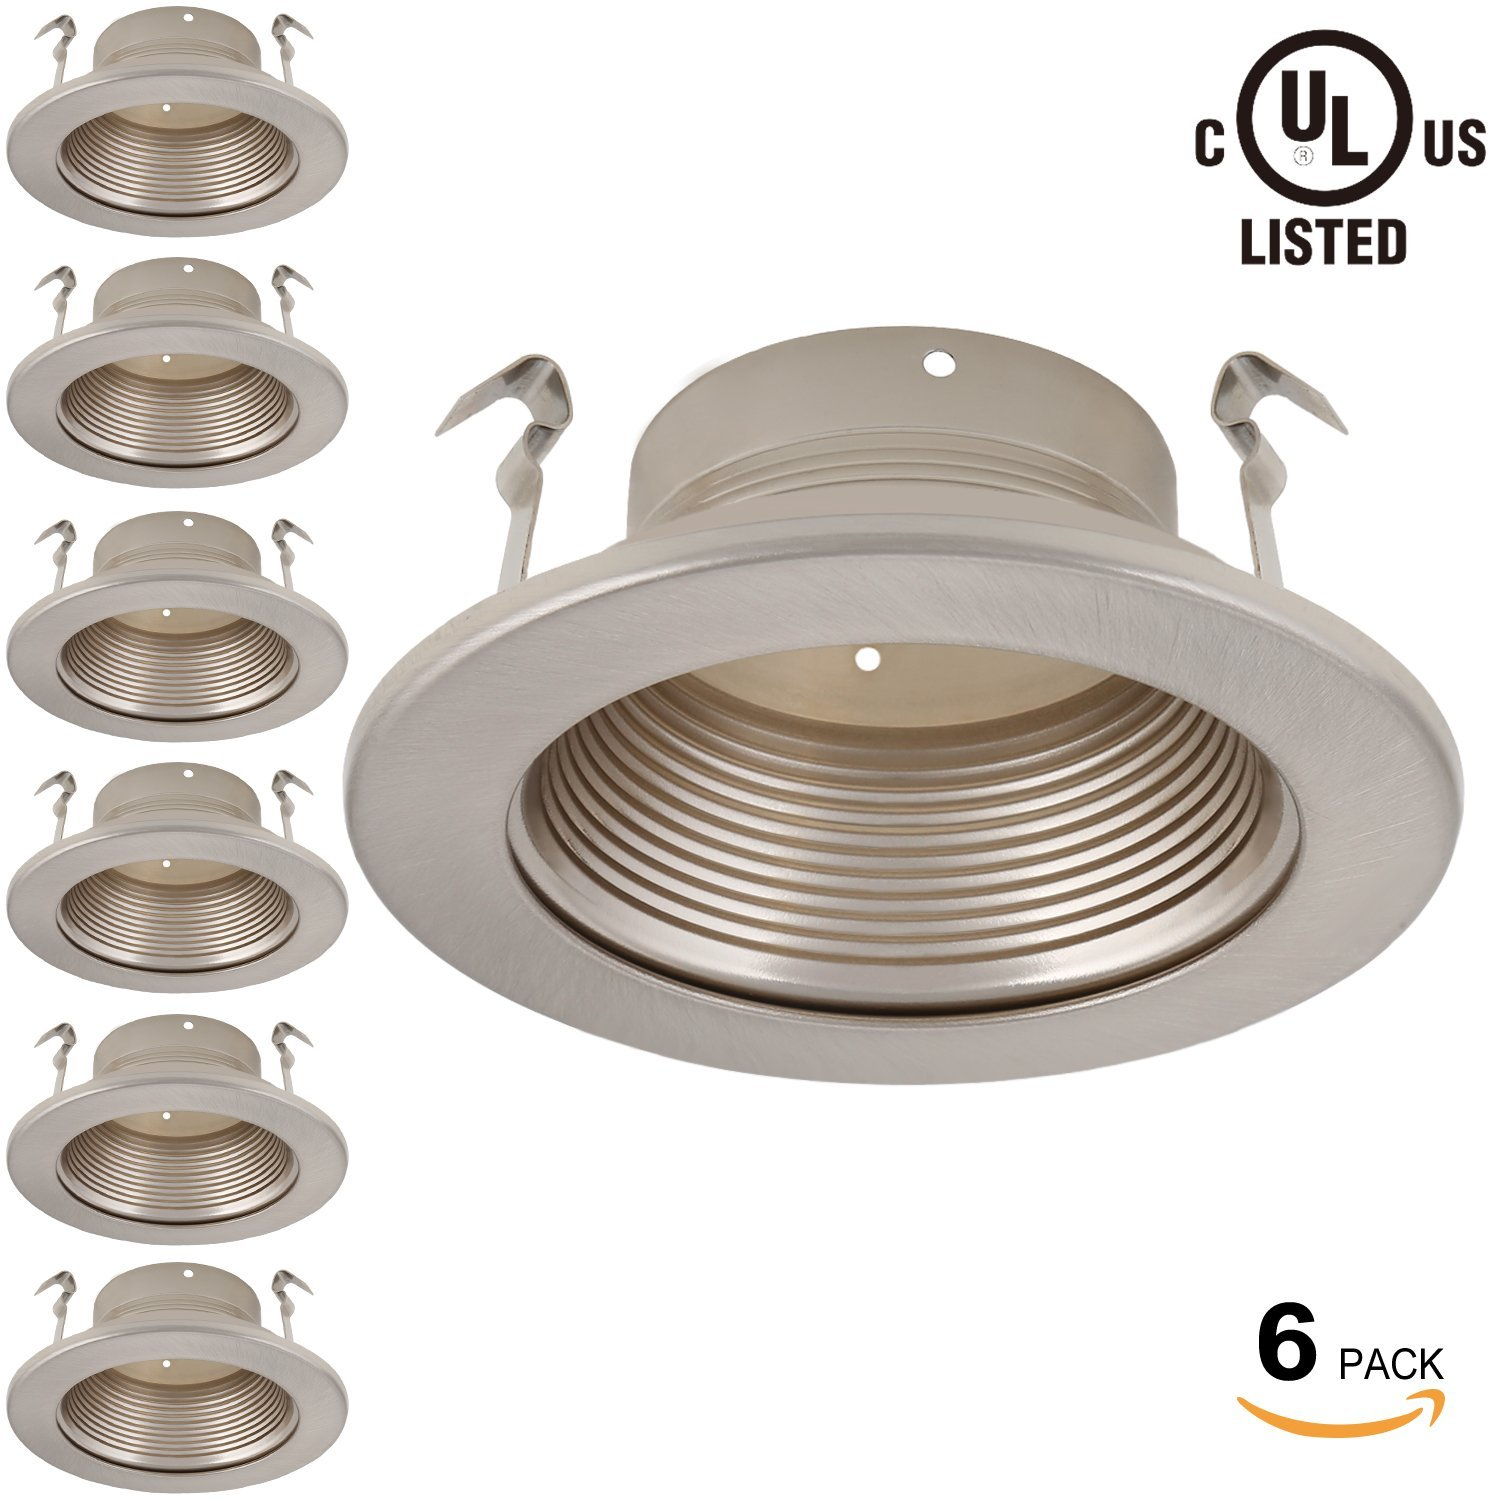 6 Pack 4 Inch Recessed Can Light Trim with Satin Nickel M...